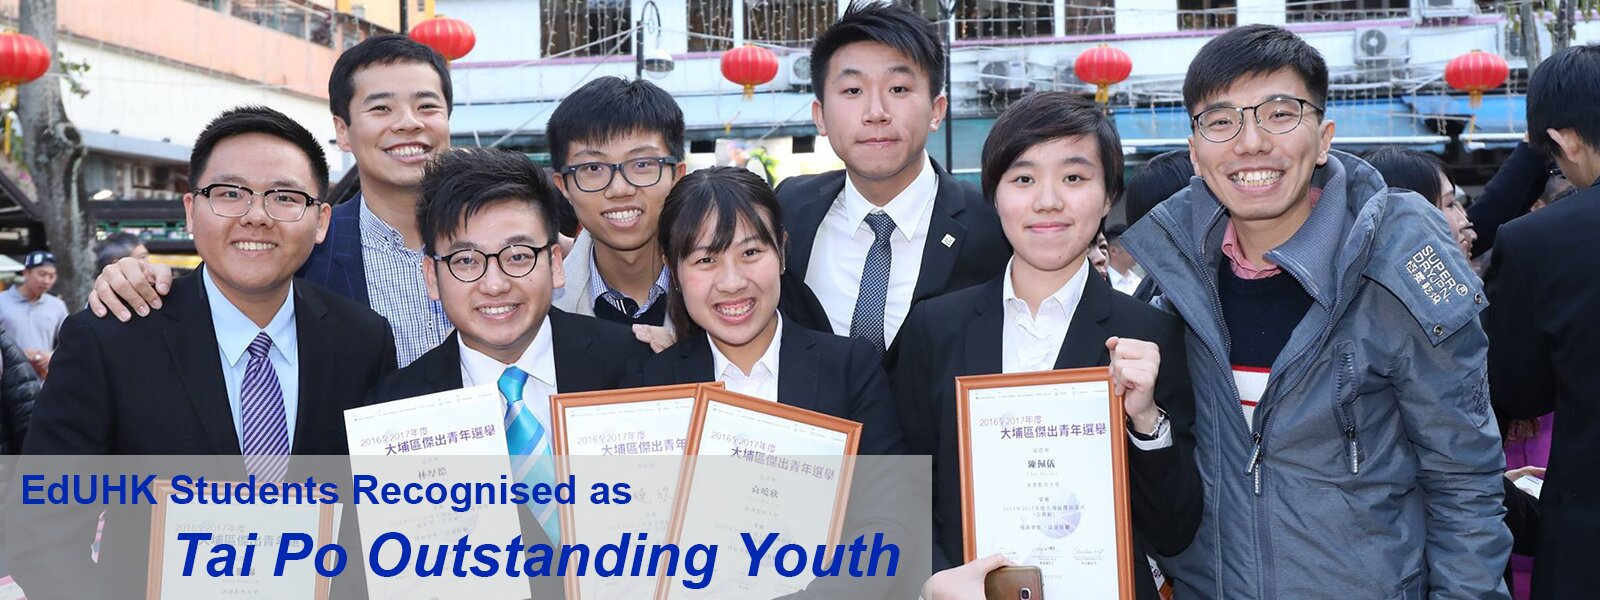 EdUHK Students Recognised as Tai Po Outstanding Youth